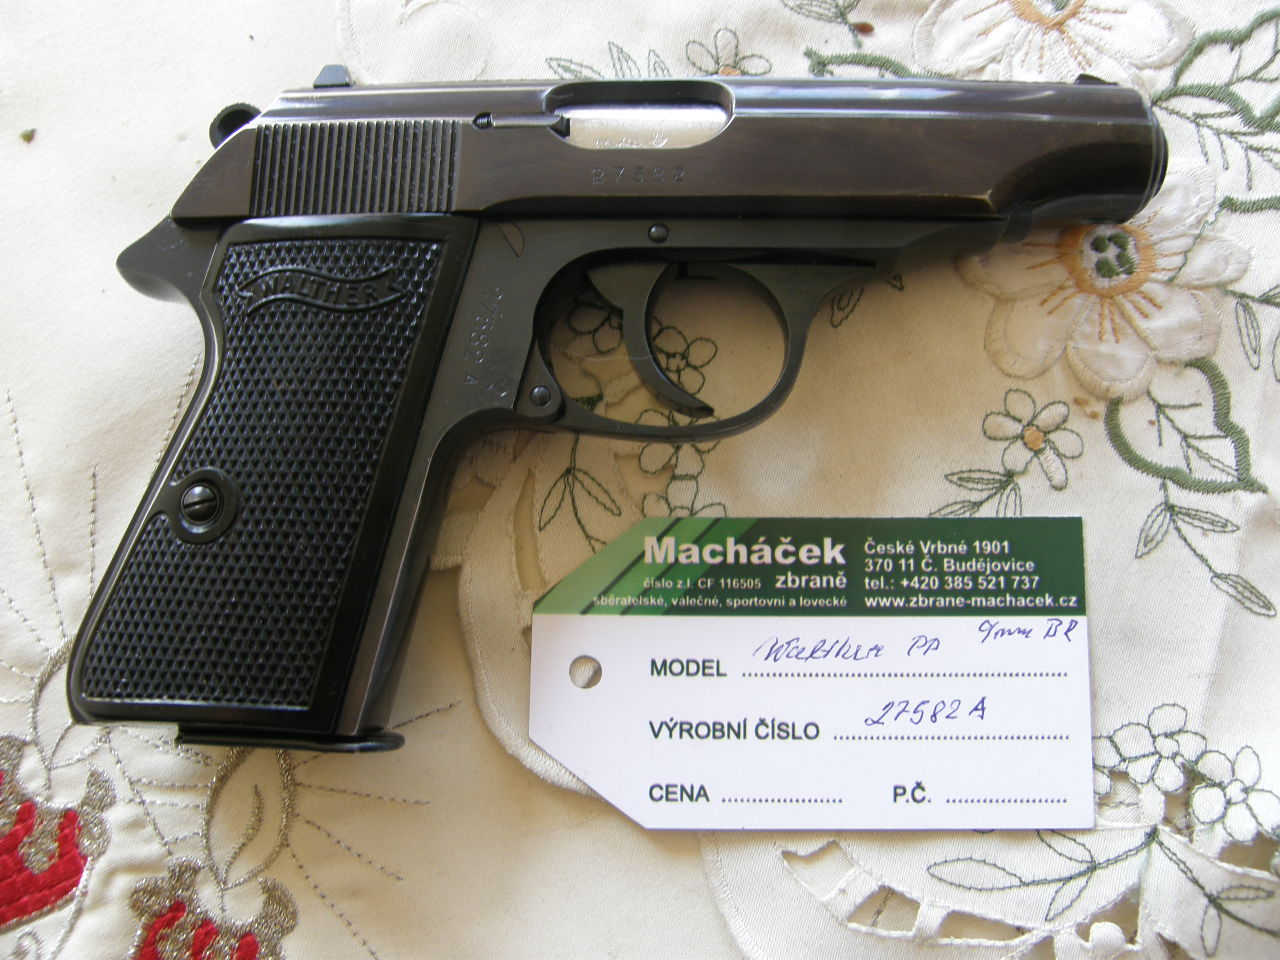 Pistole Walther PP v.č. 27582A r. 9 mm Br.